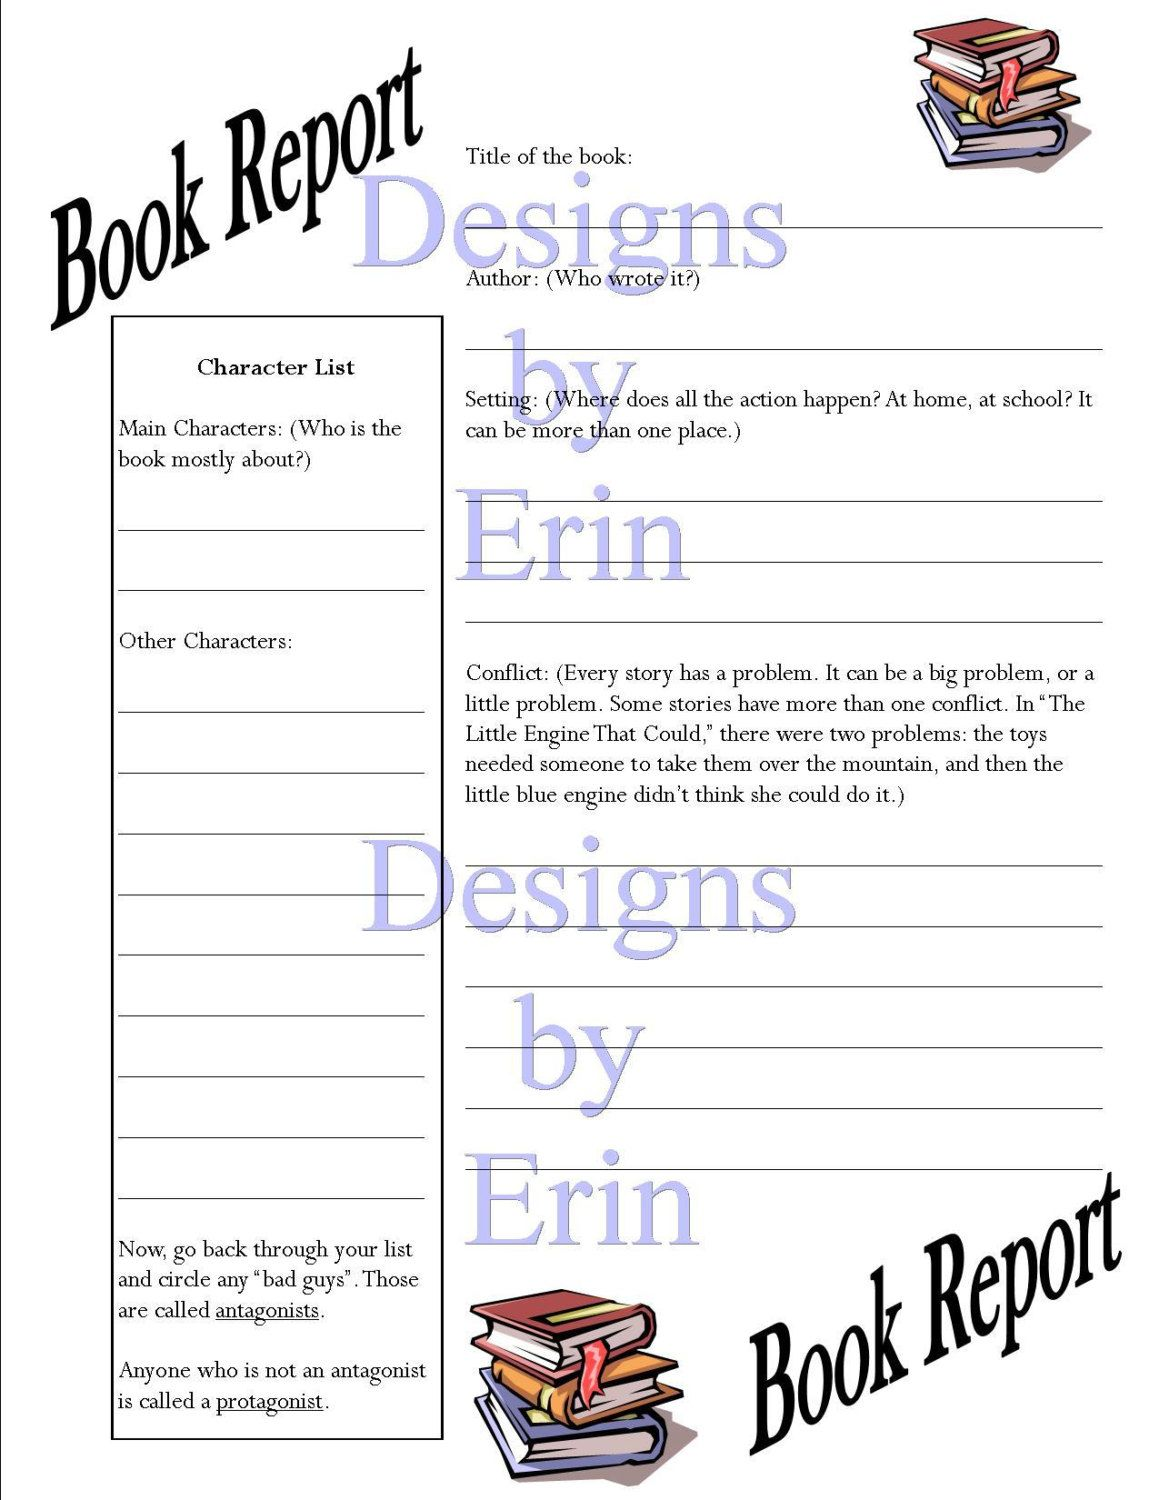 Book Report Worksheet By Heartbeatecho On Etsy 3 50